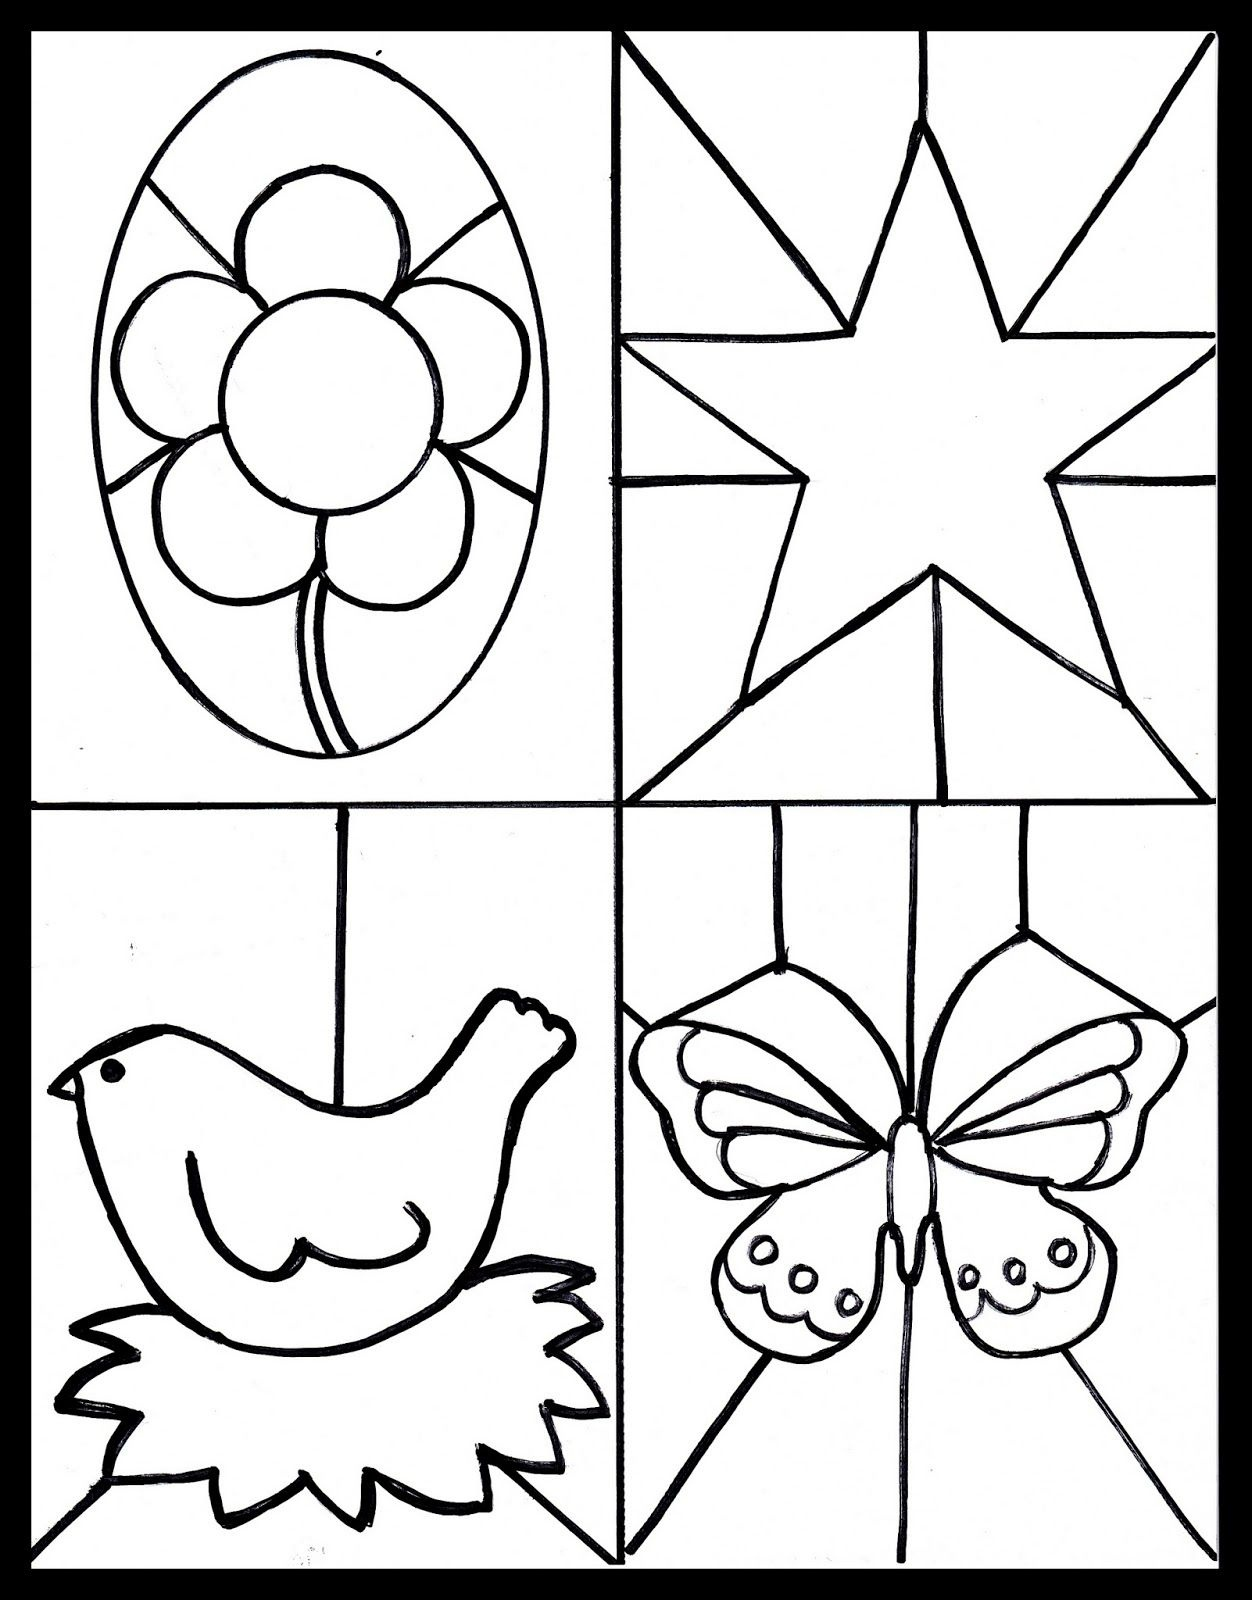 Kid's Craft, Stained Glass Free Printable | Blogger Crafts We Love - Free Printable Crafts